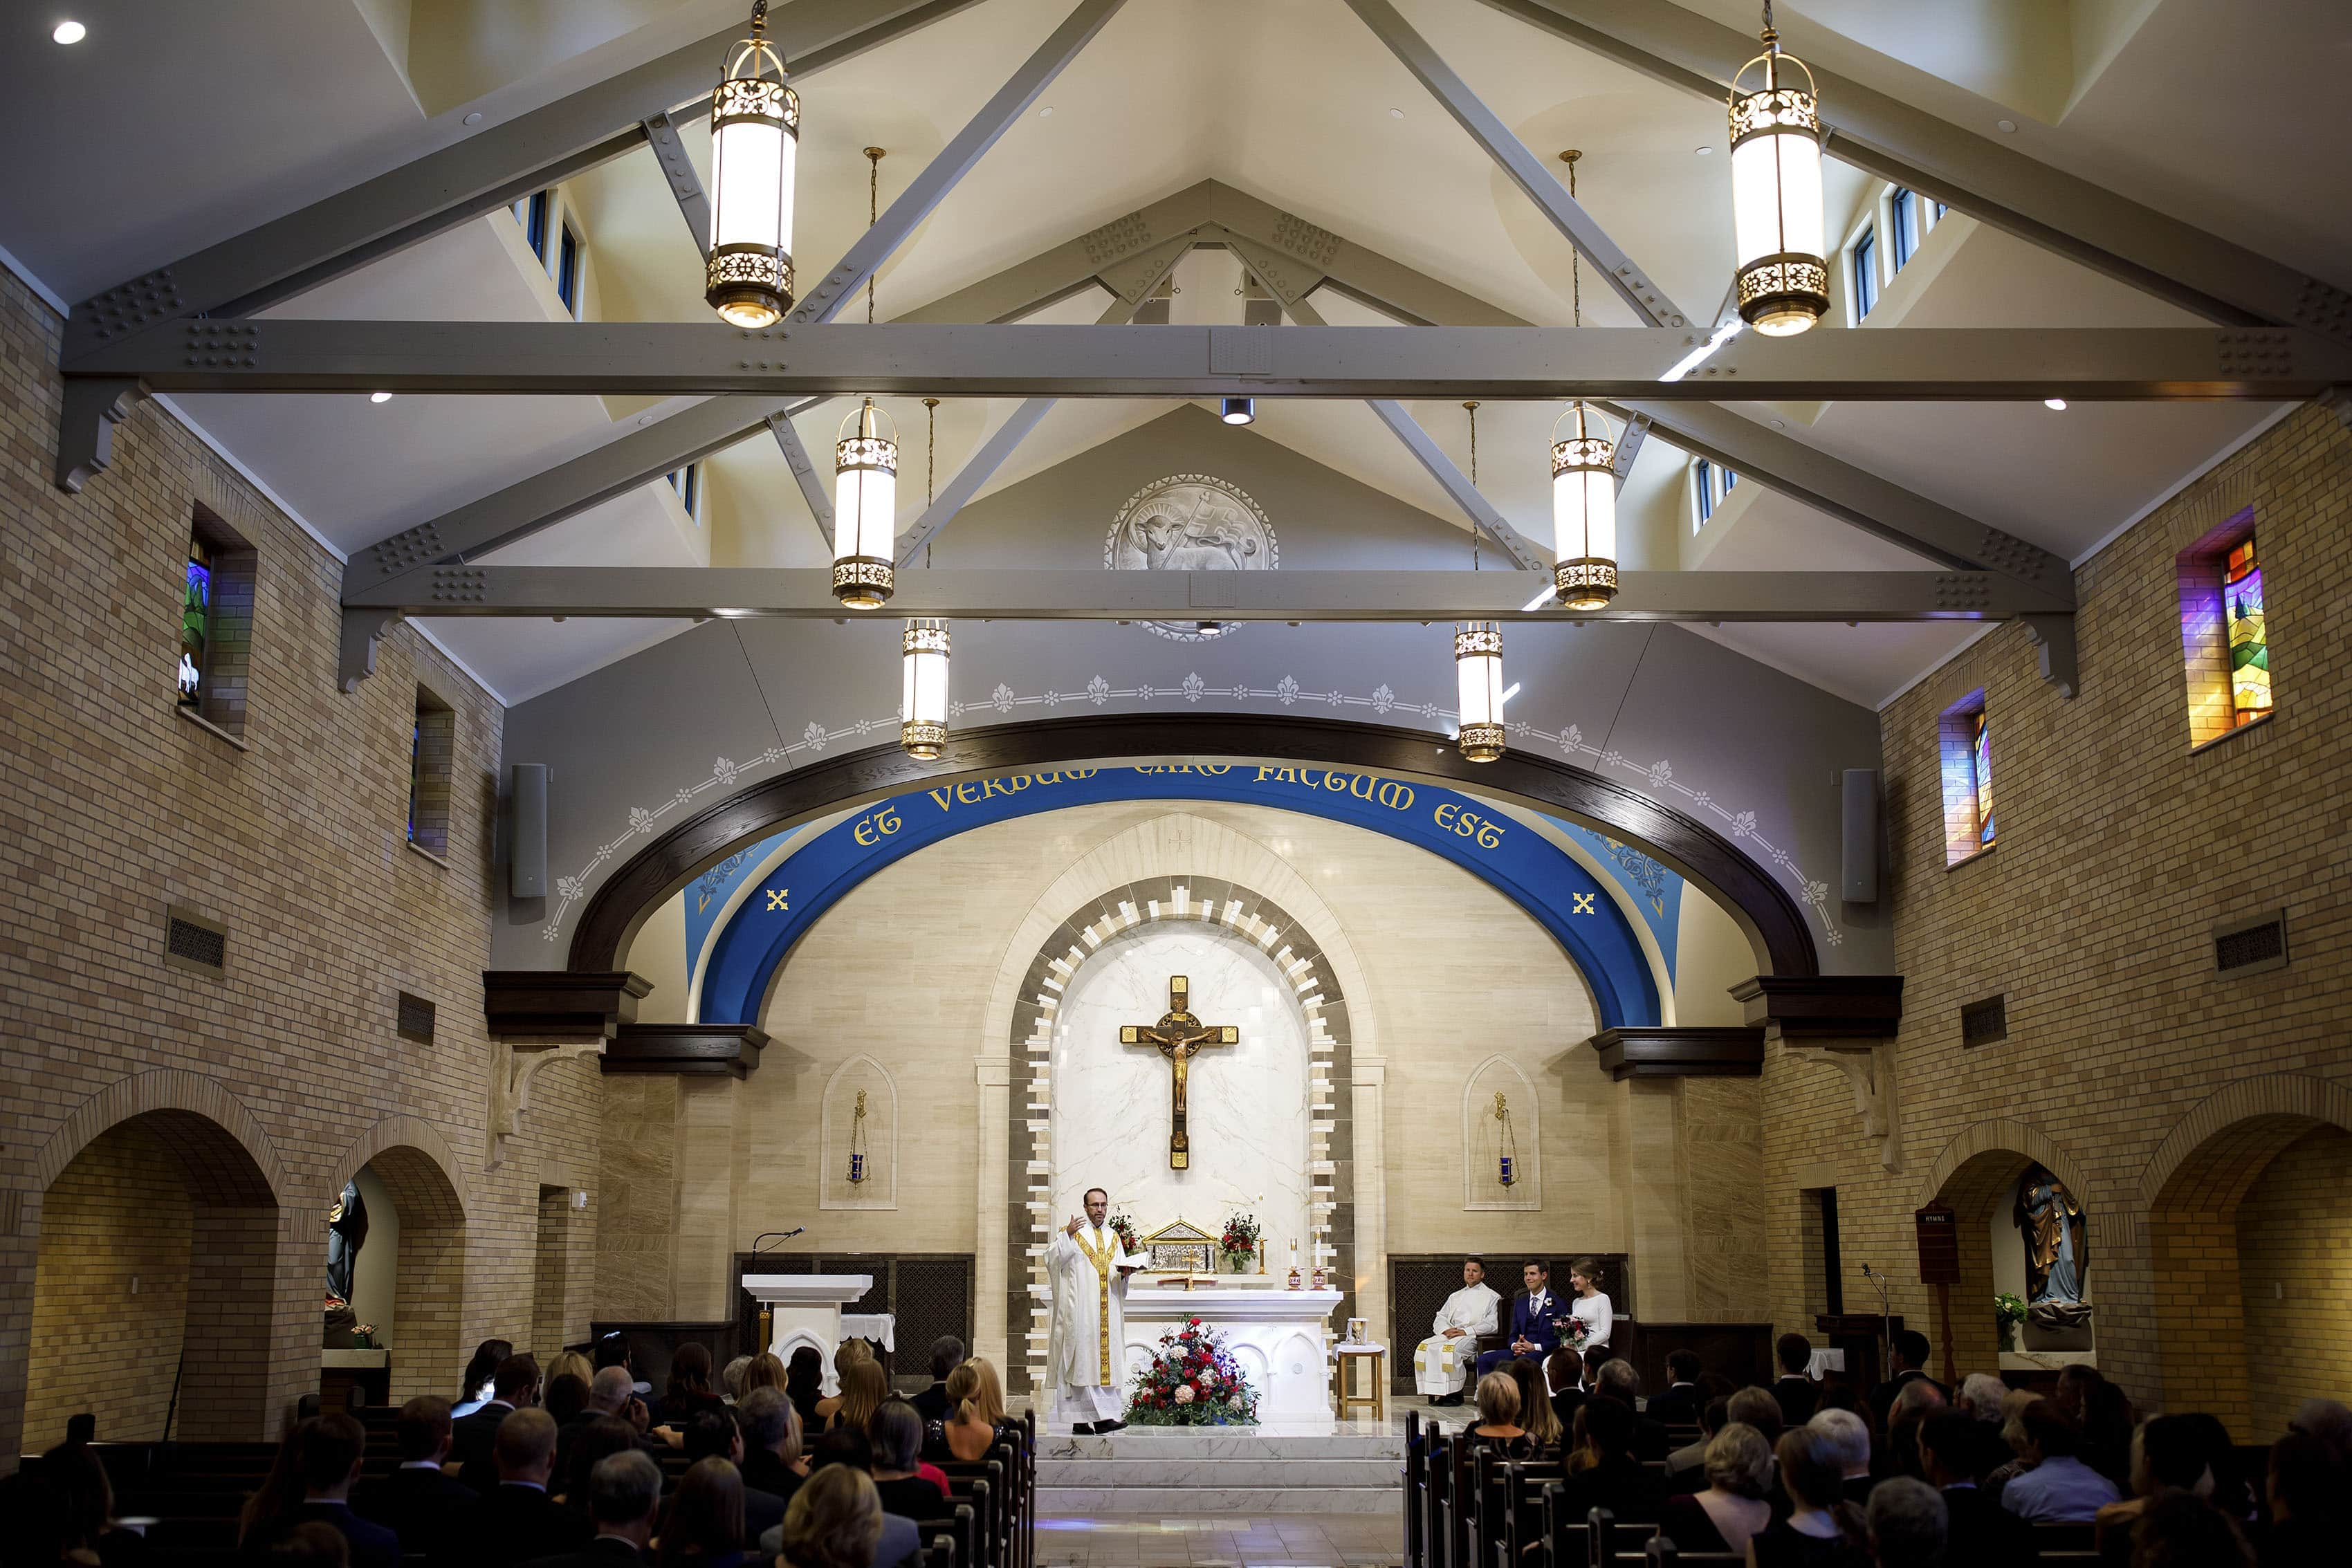 Our Lady of Lourdes wedding ceremony